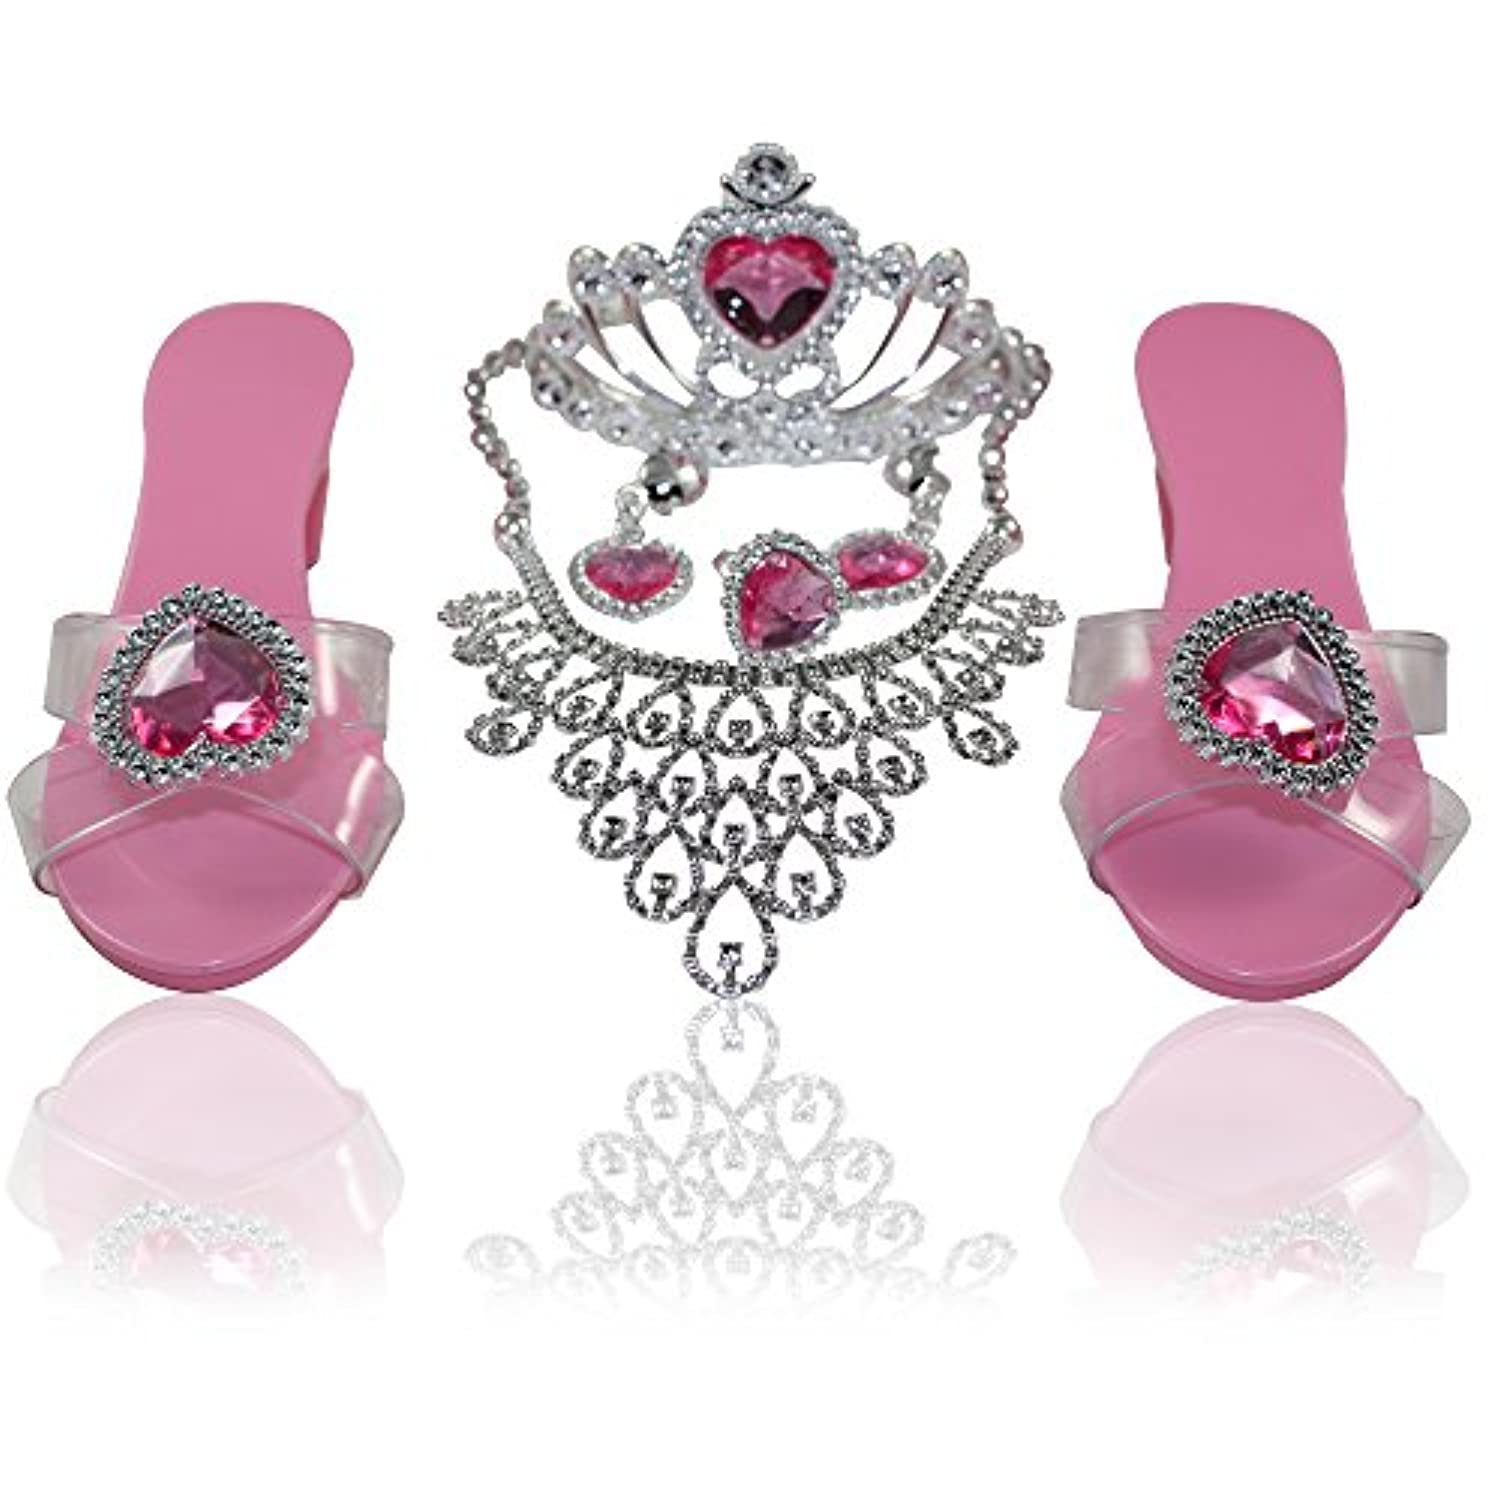 Smarterbuy Toys Little Princess Dress Up Tiara with Necklace, Earrings, Ring, Bracelets and Step In Shoes Fashion Beauty Set for Girls